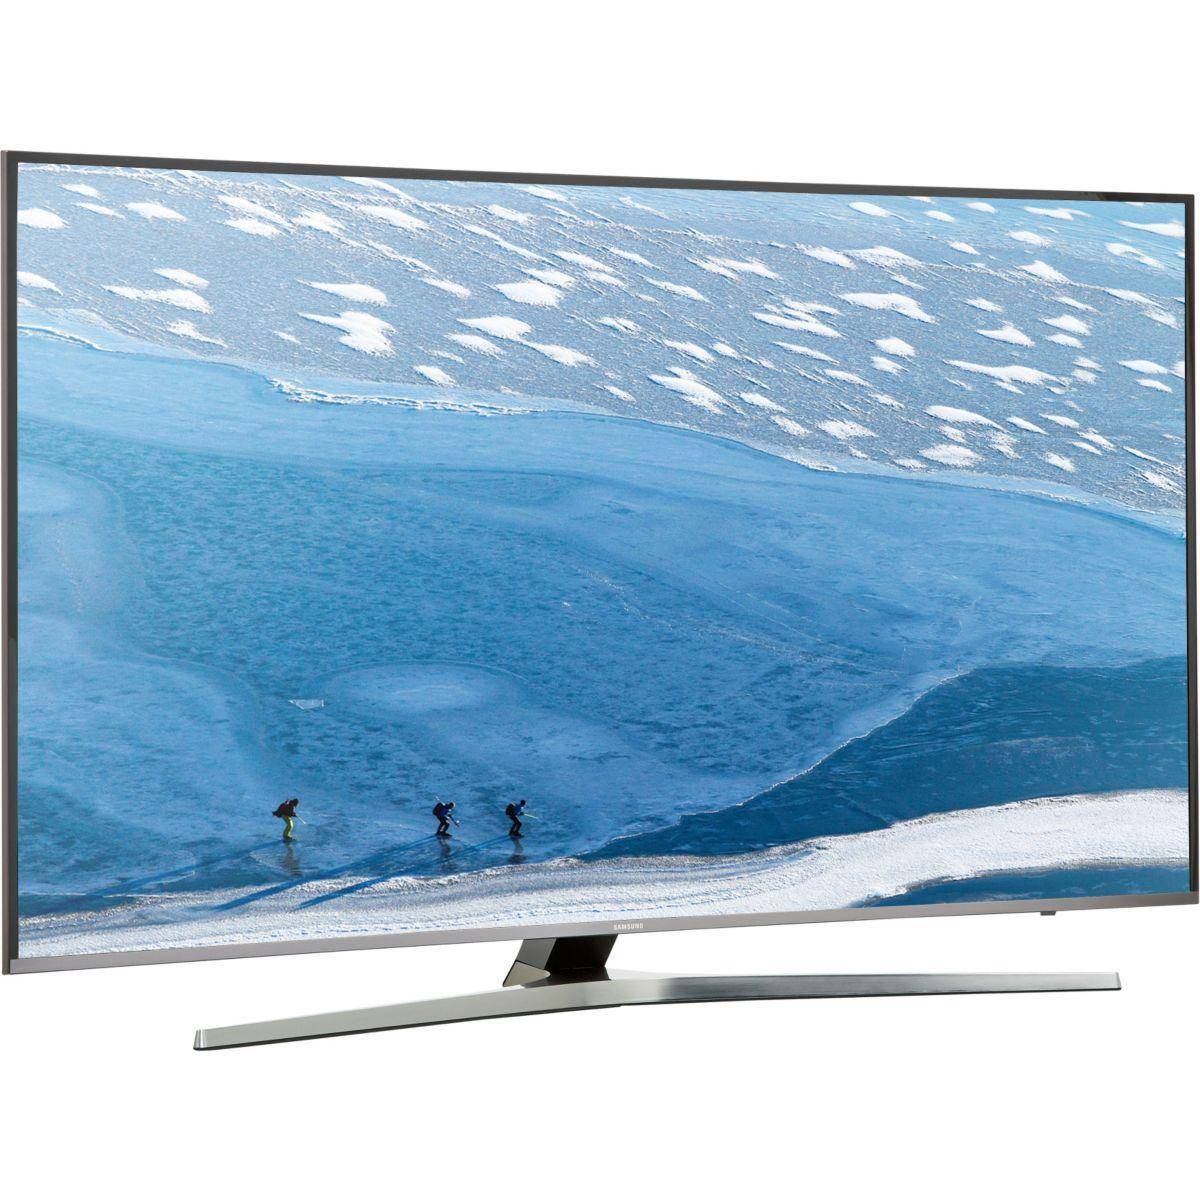 SAMSUNG Smart TV LED 4K Ultra HD 138 cm SAMSUNG UE55KU6670 incurvée